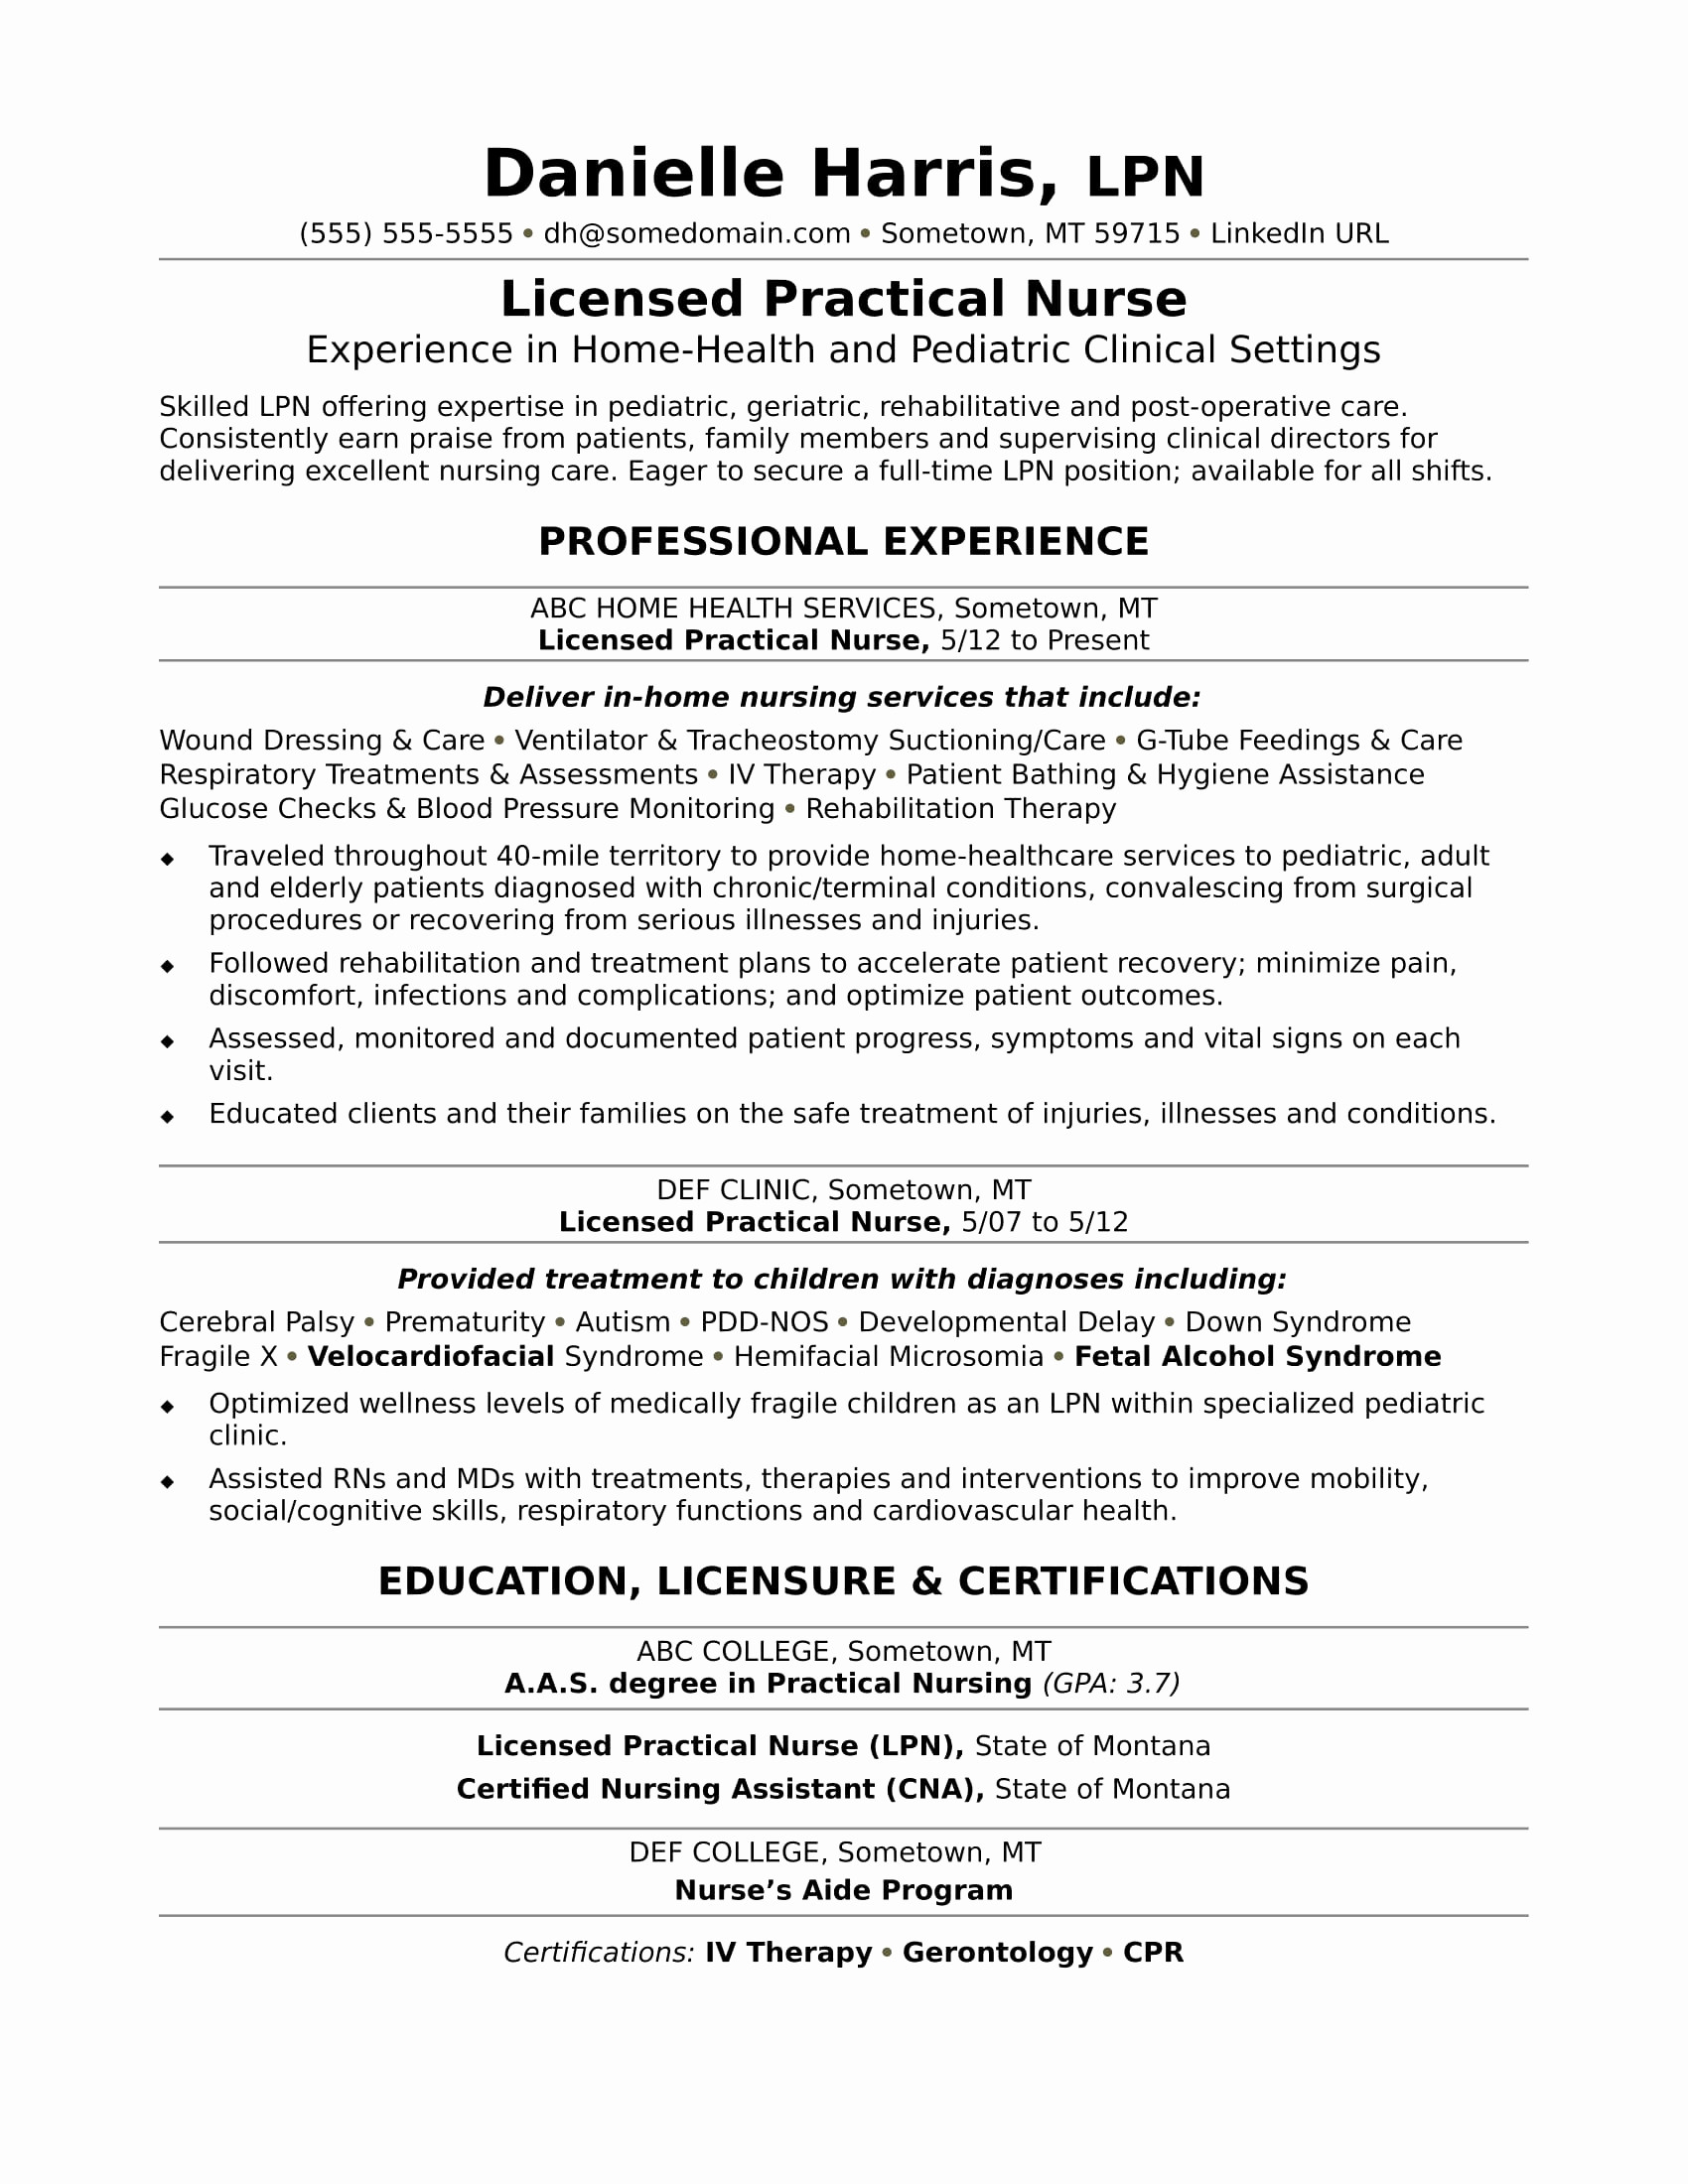 massage therapy resume template Collection-Resume for Massage therapy – Massage therapy Resume Template New Elegant New Nurse Resume Awesome 9-b